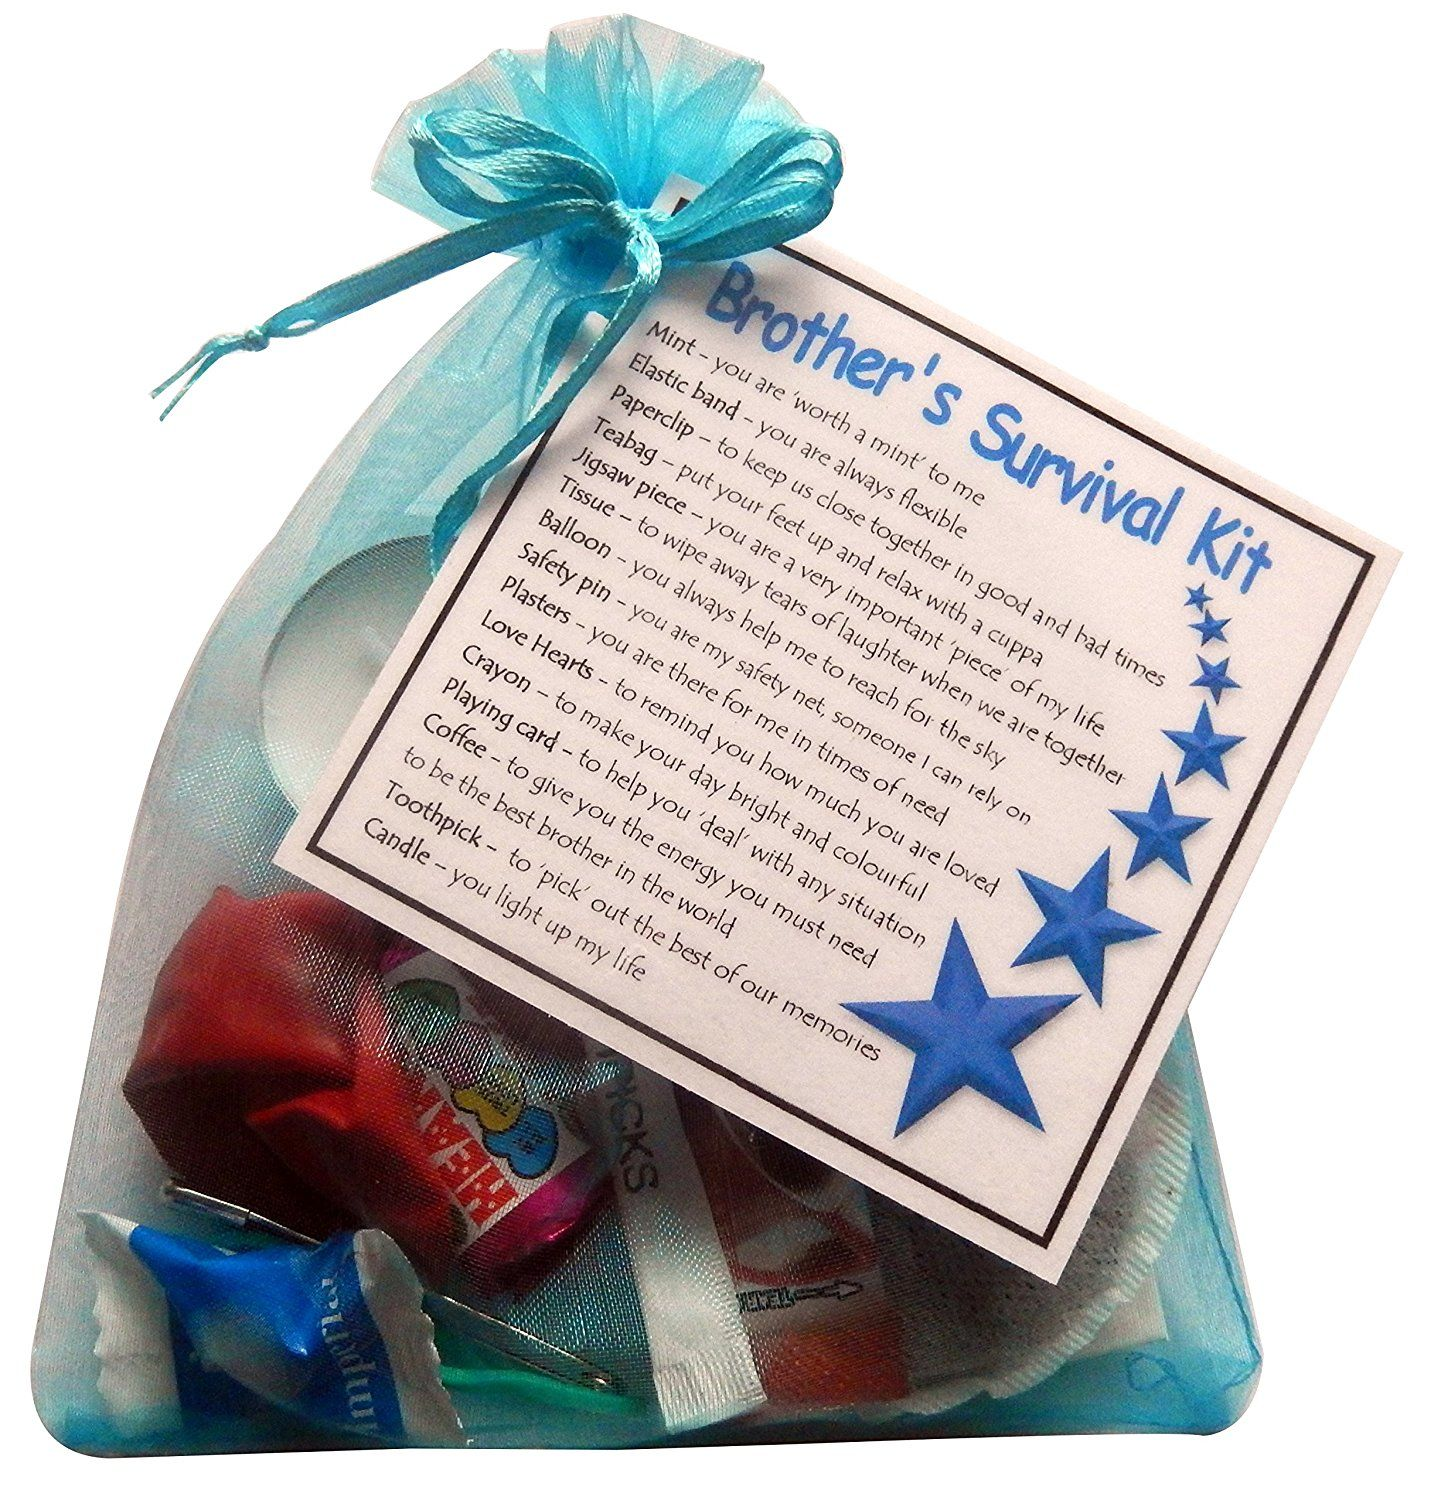 Brother's Survival Kit Gift (Great novelty gift for